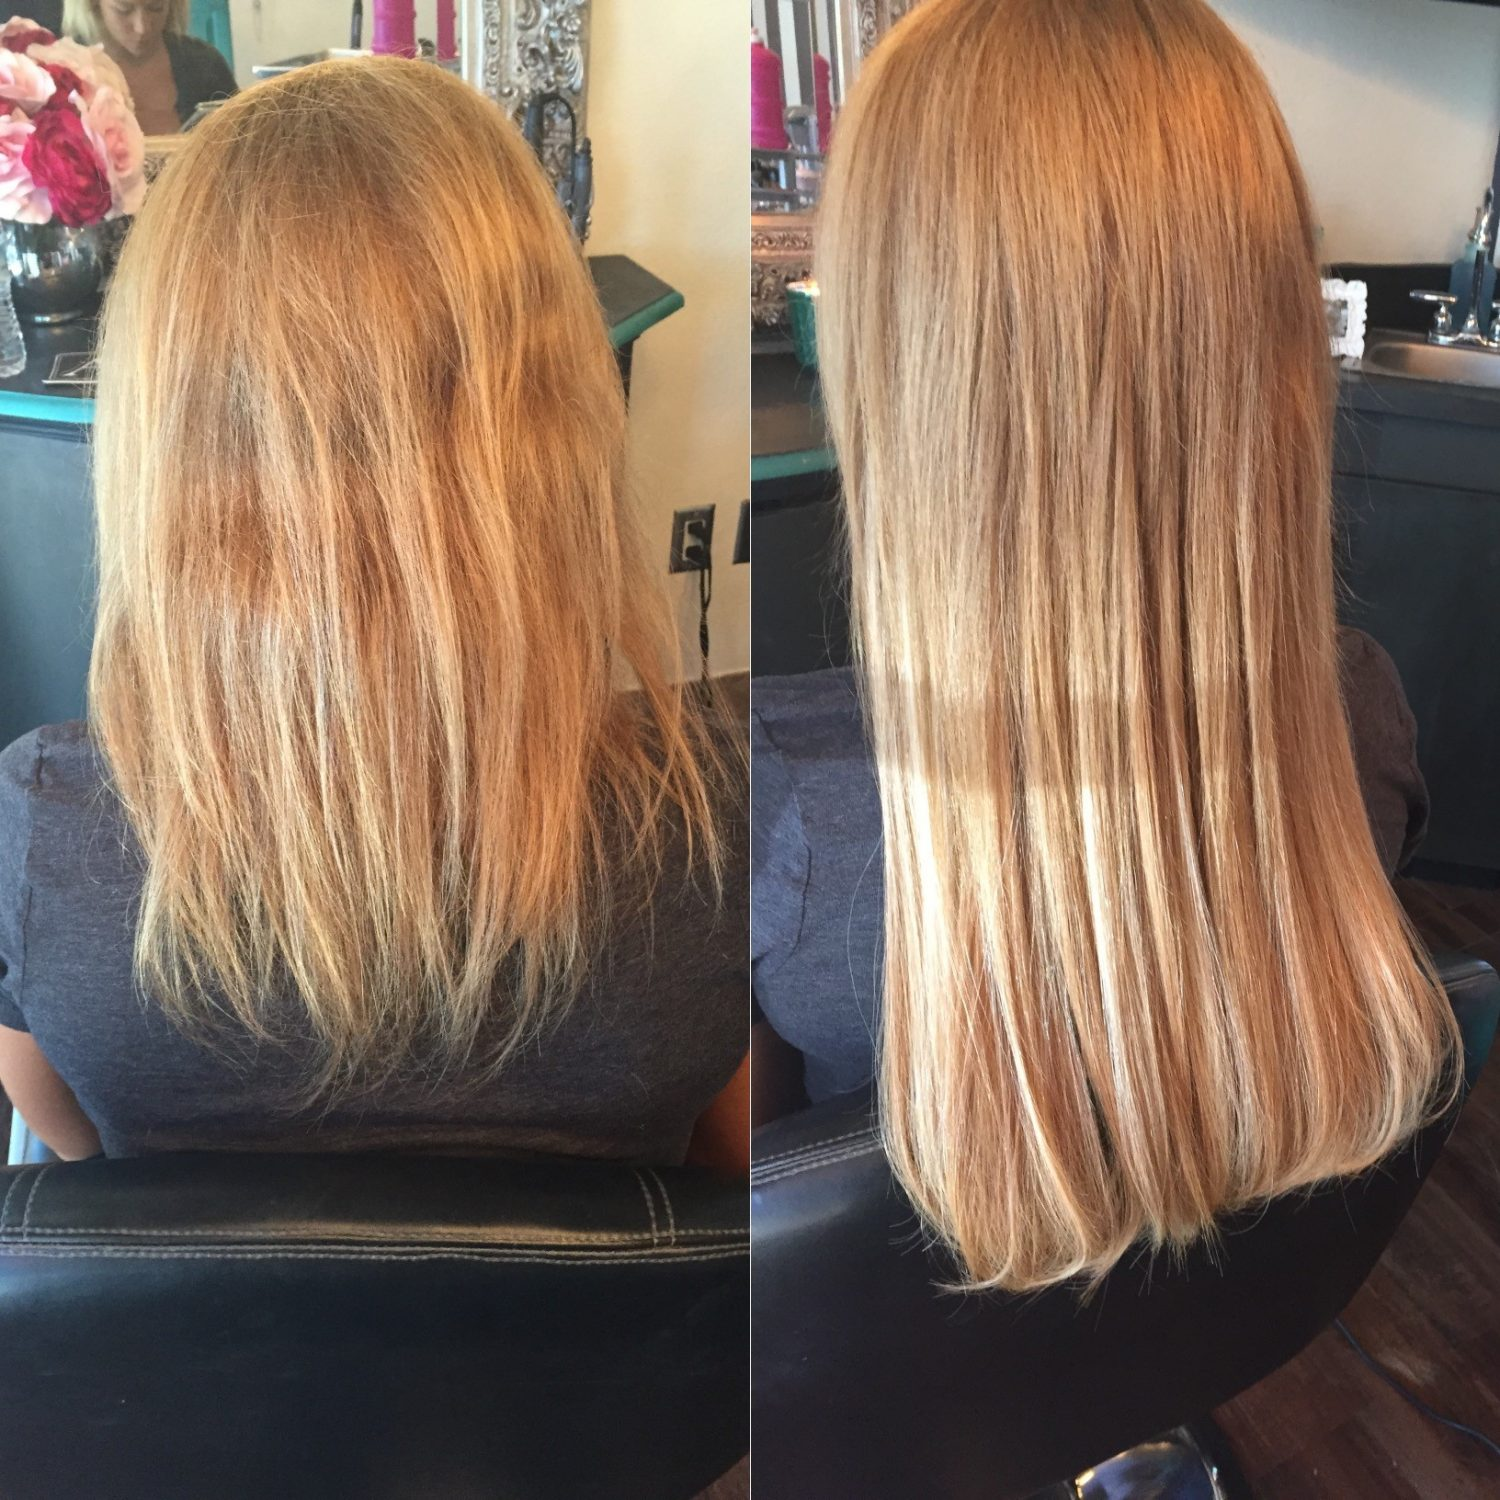 Get High Quality Eco Friendly Extensions At Ashleys Hair Extension